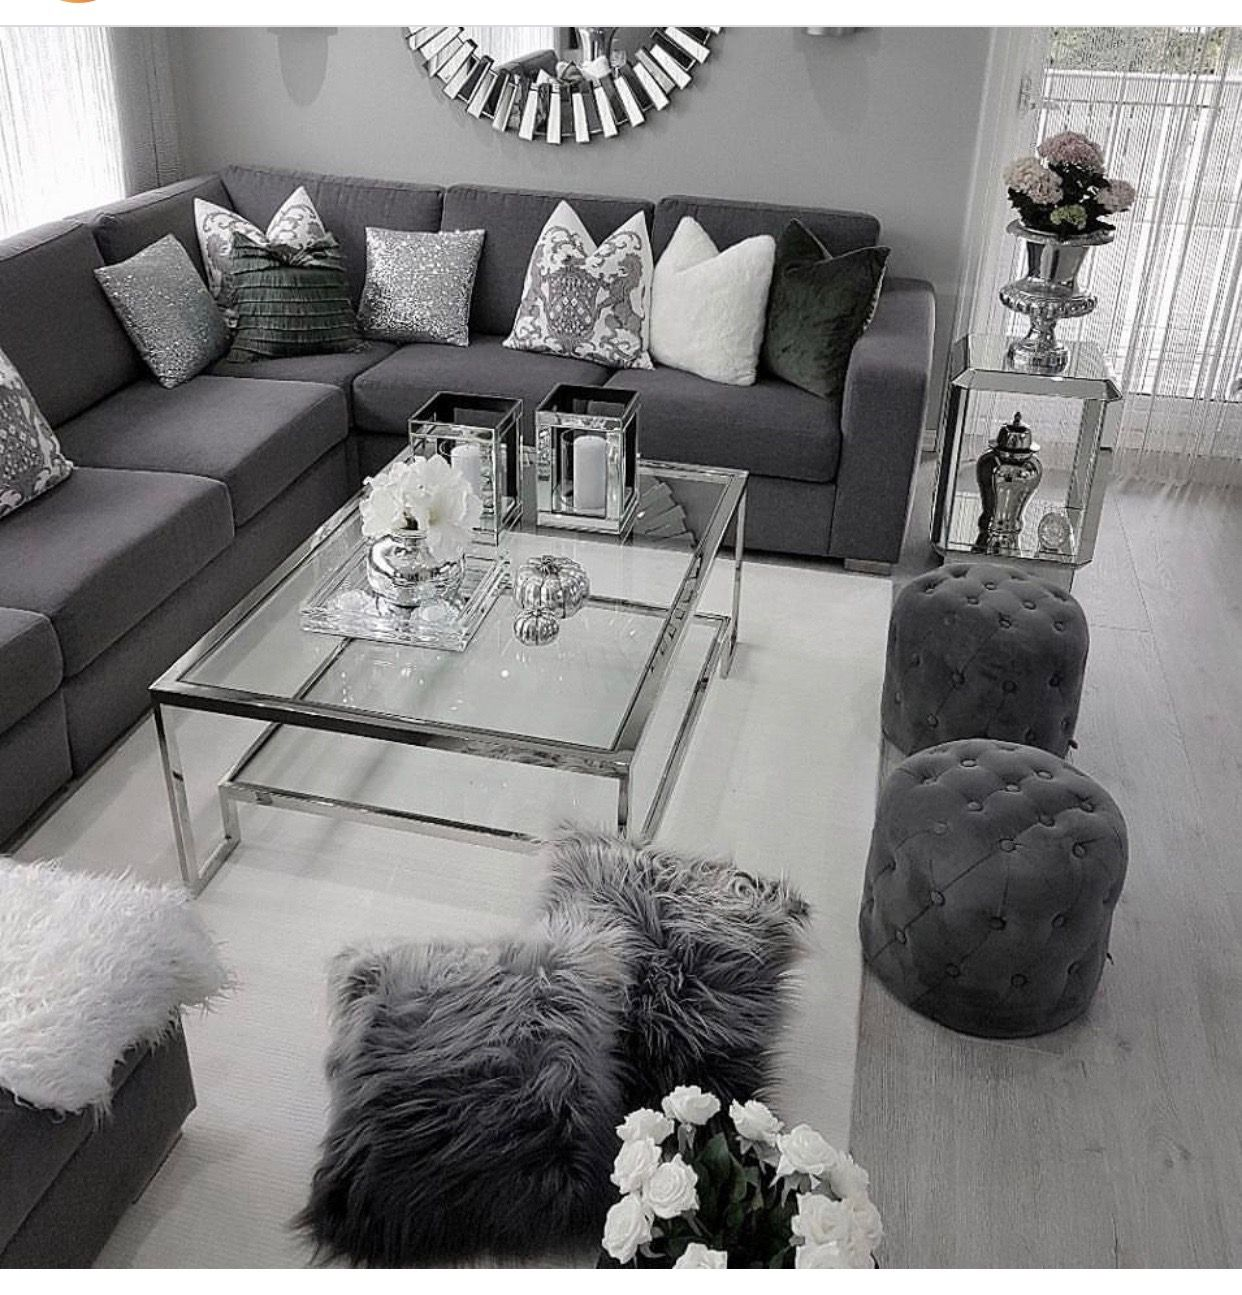 Pin by Sarah on Decor  Living room decor gray, Living room decor